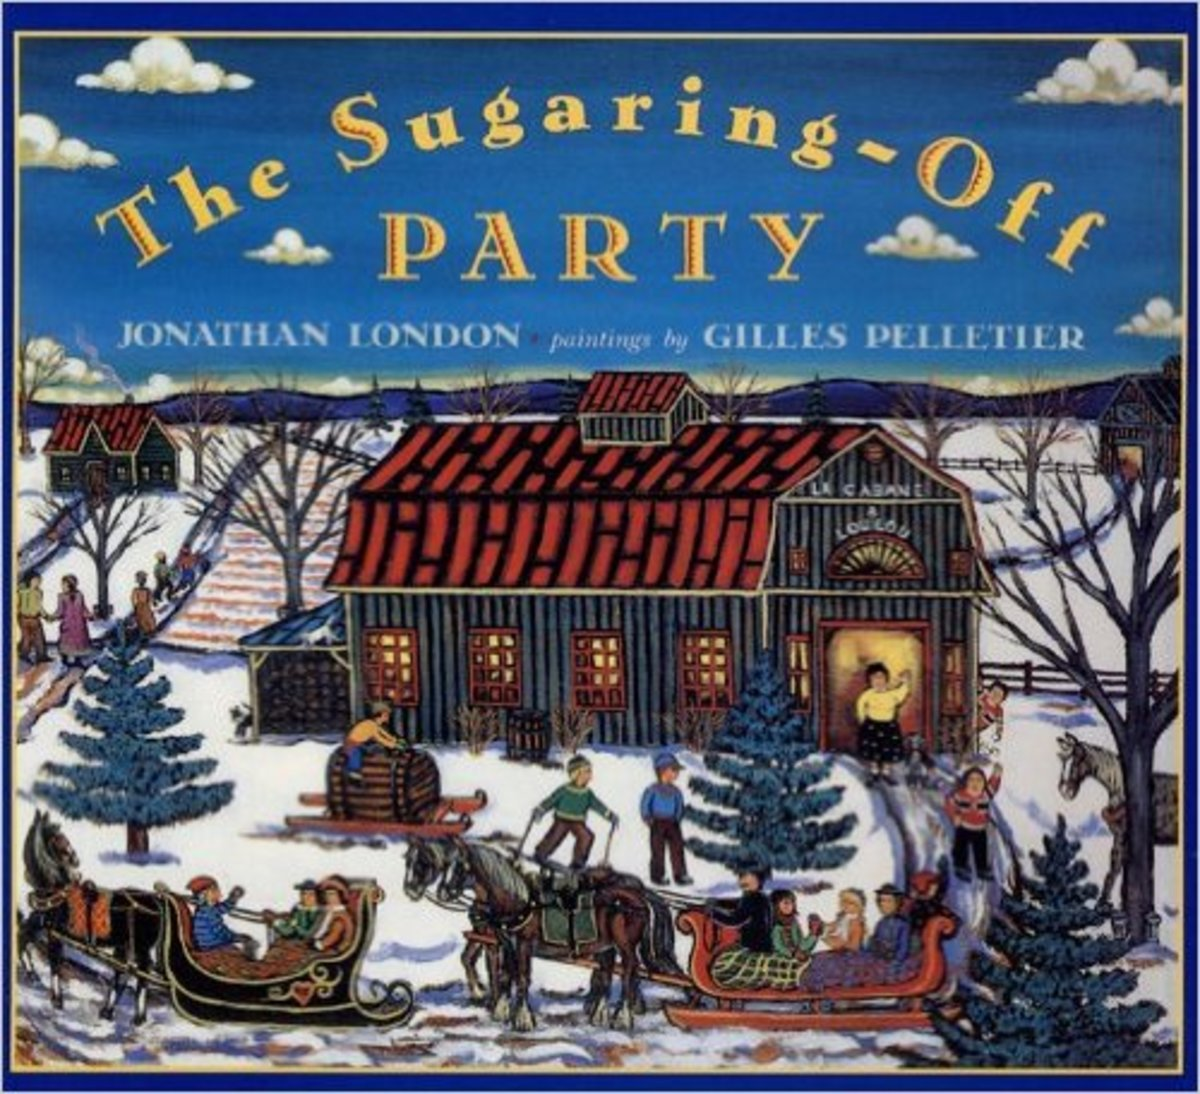 The Sugaring Off Party by Jonathan London